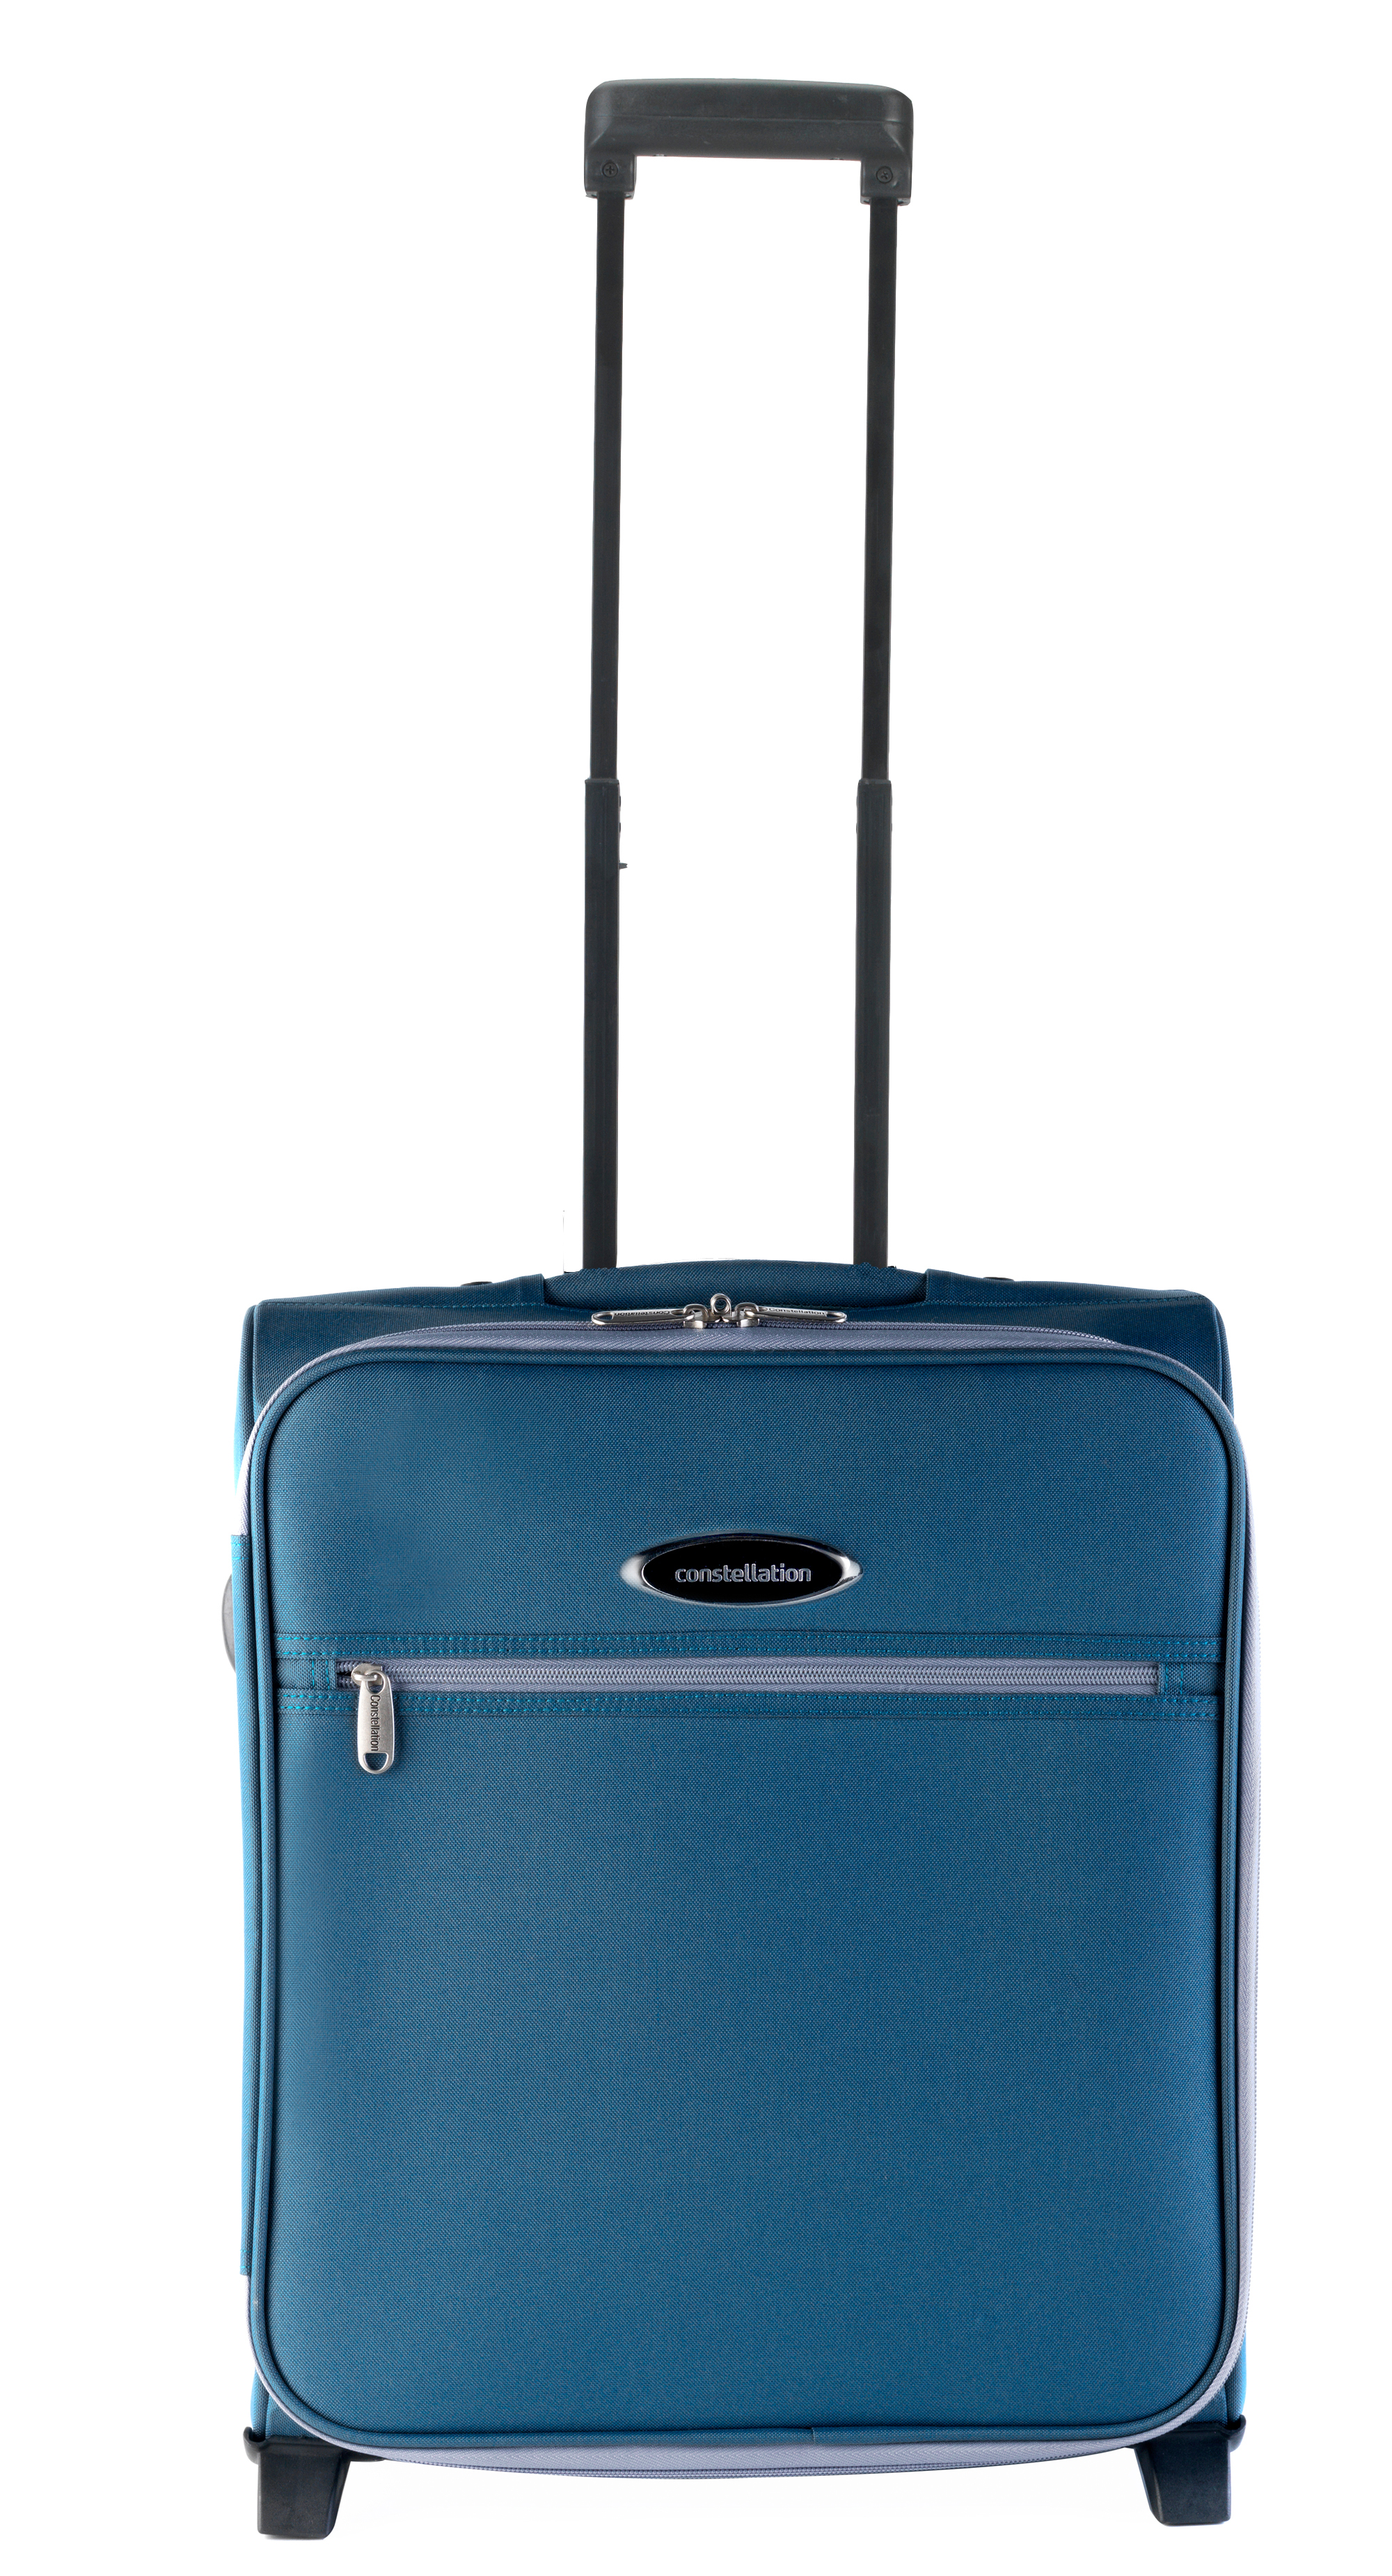 Constellation Easyjet Cabin Roved Maximum Capacity Case Teal Grey